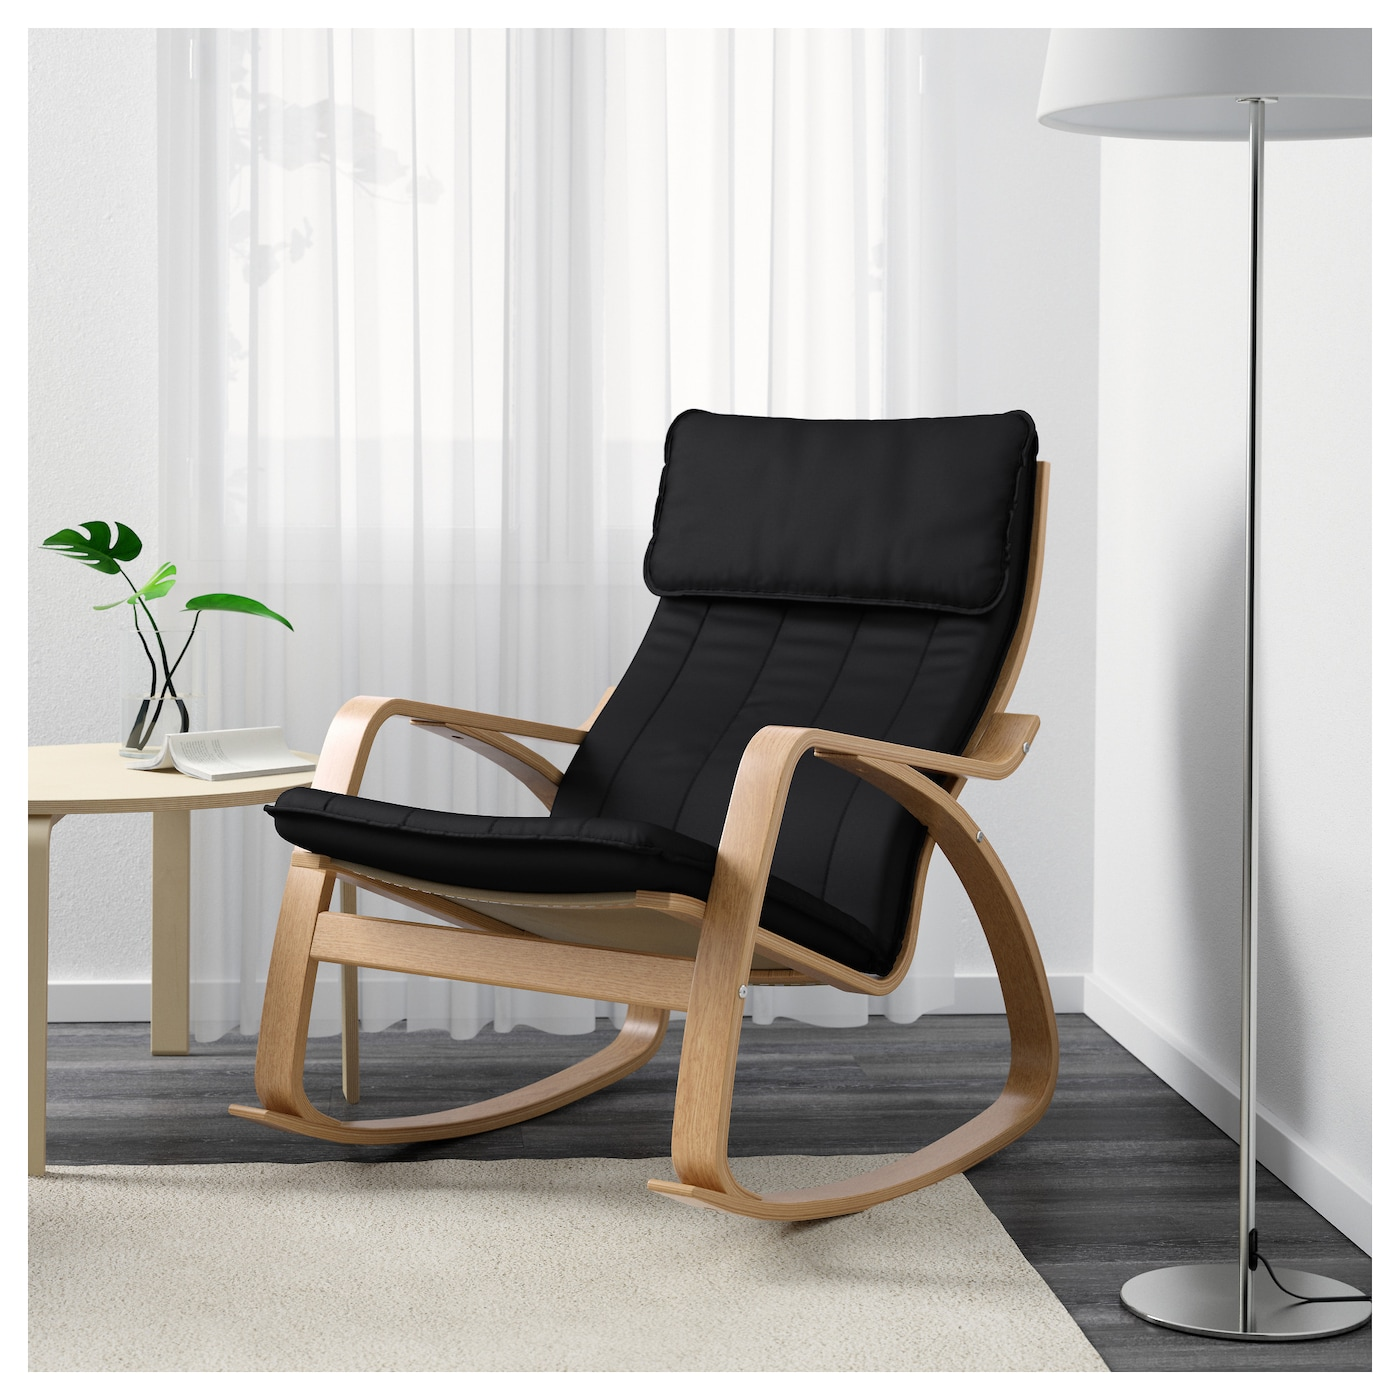 #614930 You Have Disabled Your Cookies Which Means The IKEA Website Will Not  with 2000x2000 px of Most Effective Ikea Oak Chairs 20002000 wallpaper @ avoidforclosure.info